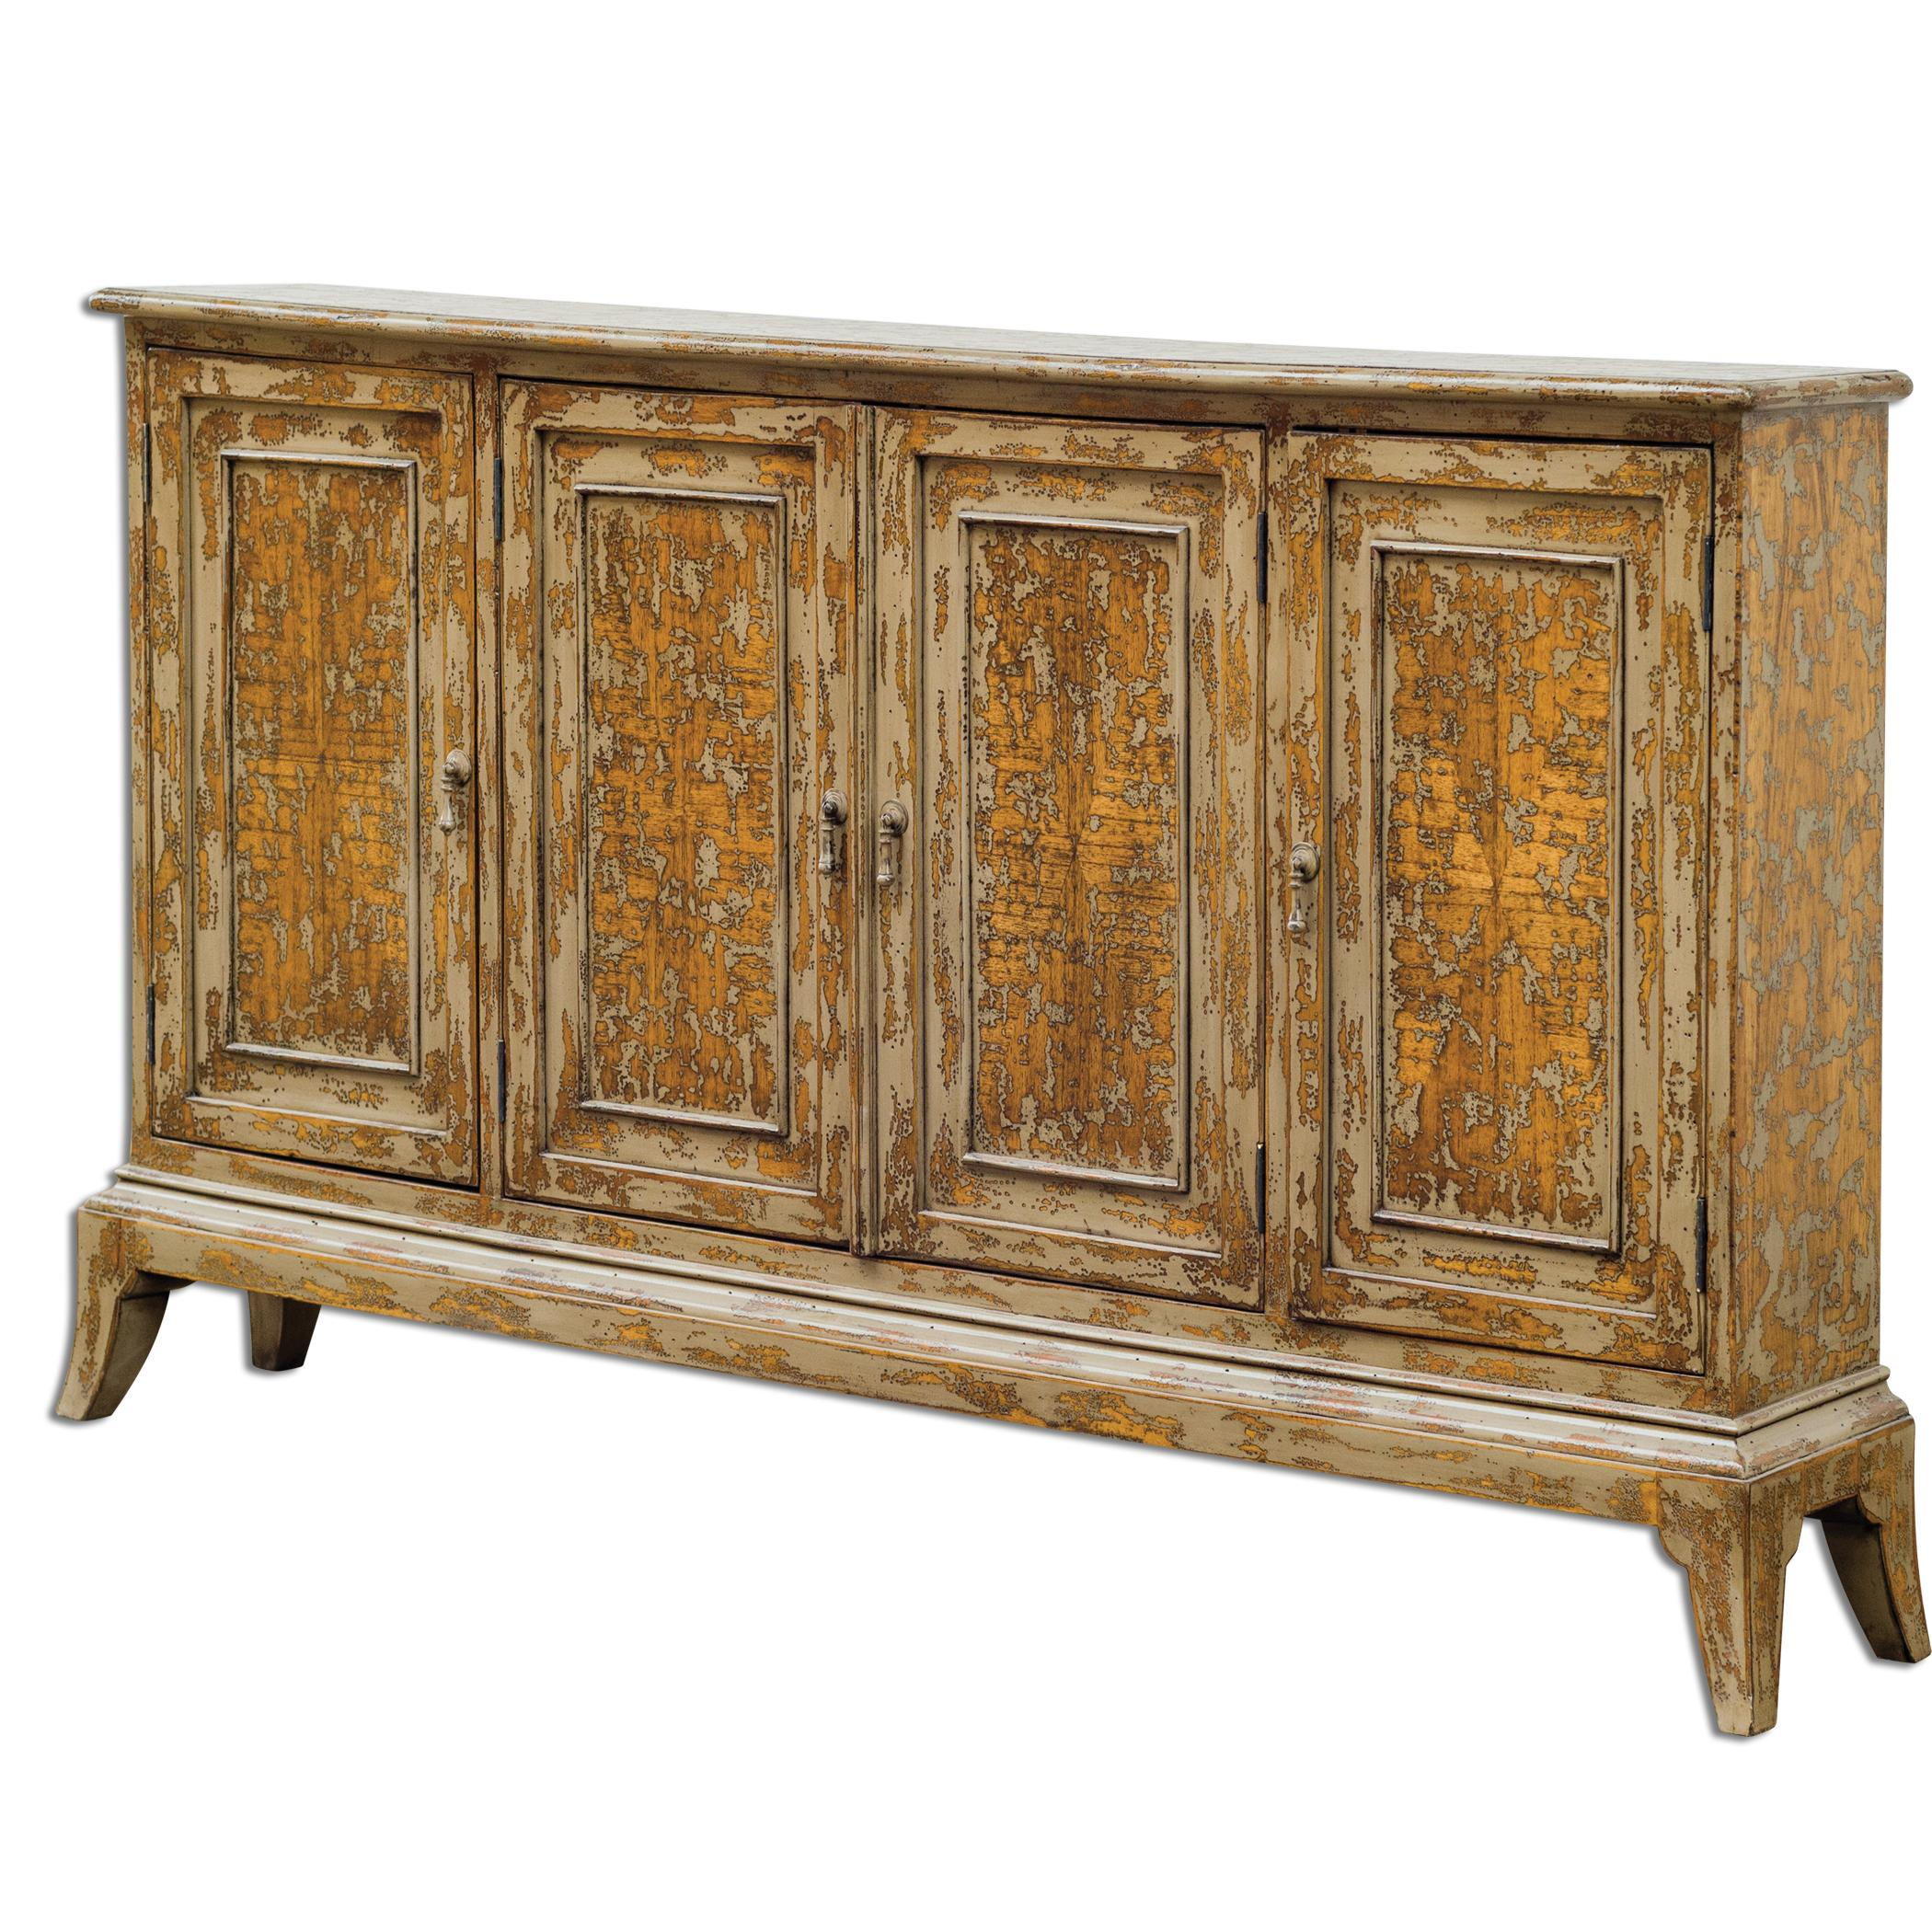 Uttermost Accent Furniture Maguire 4 Door Cabinet - Item Number: 25601